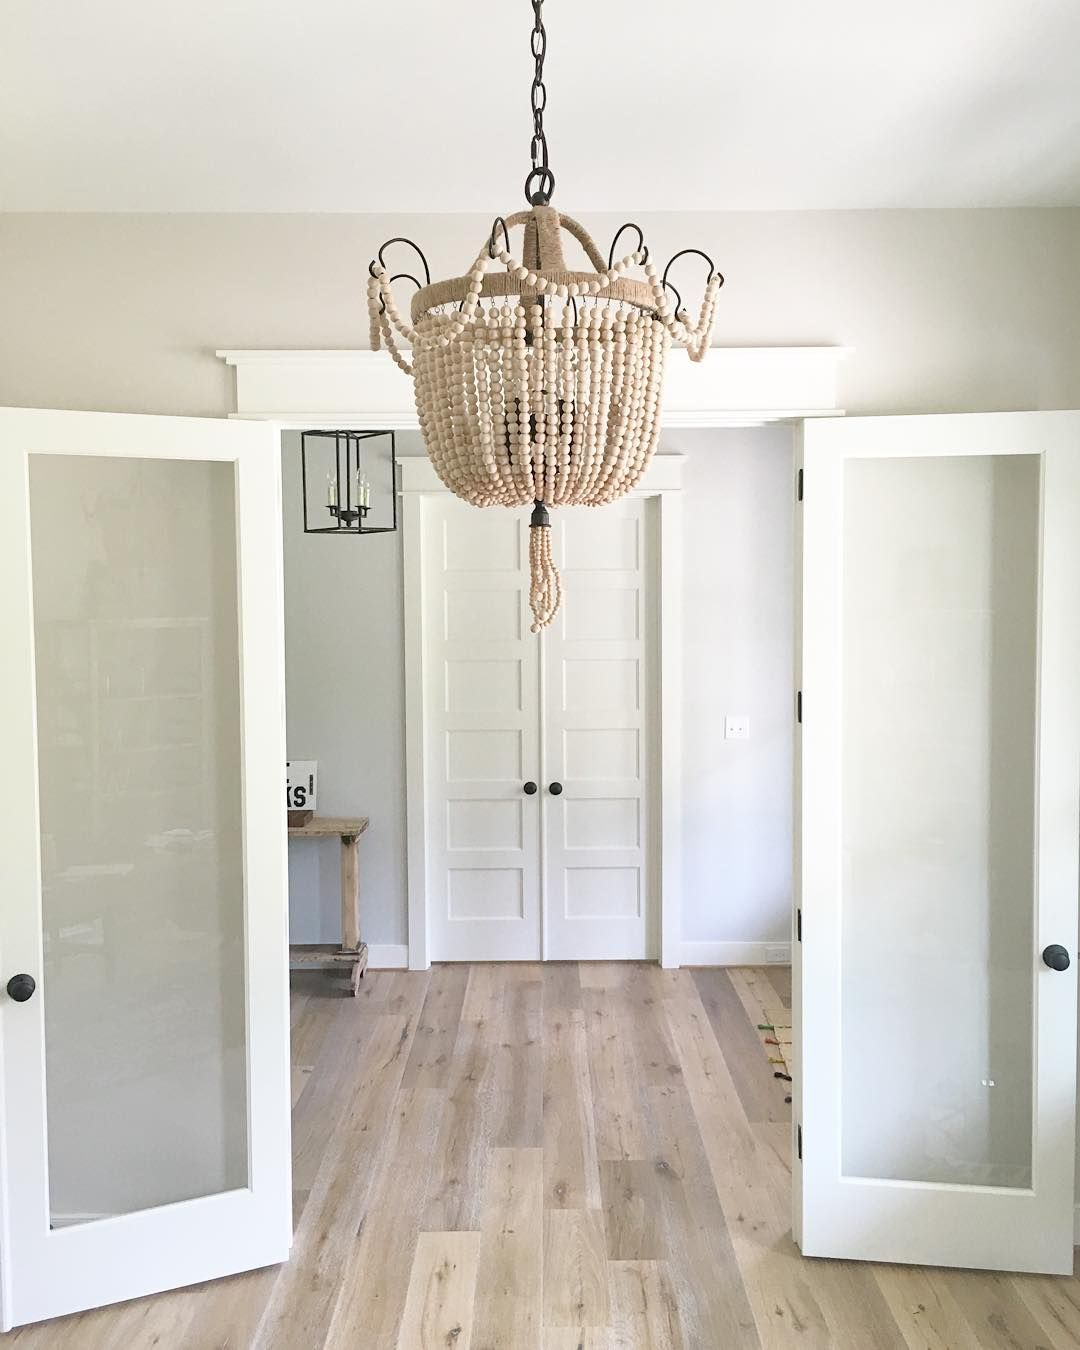 Color In The First Room Is Pale Oak By Benjamin Moore. The